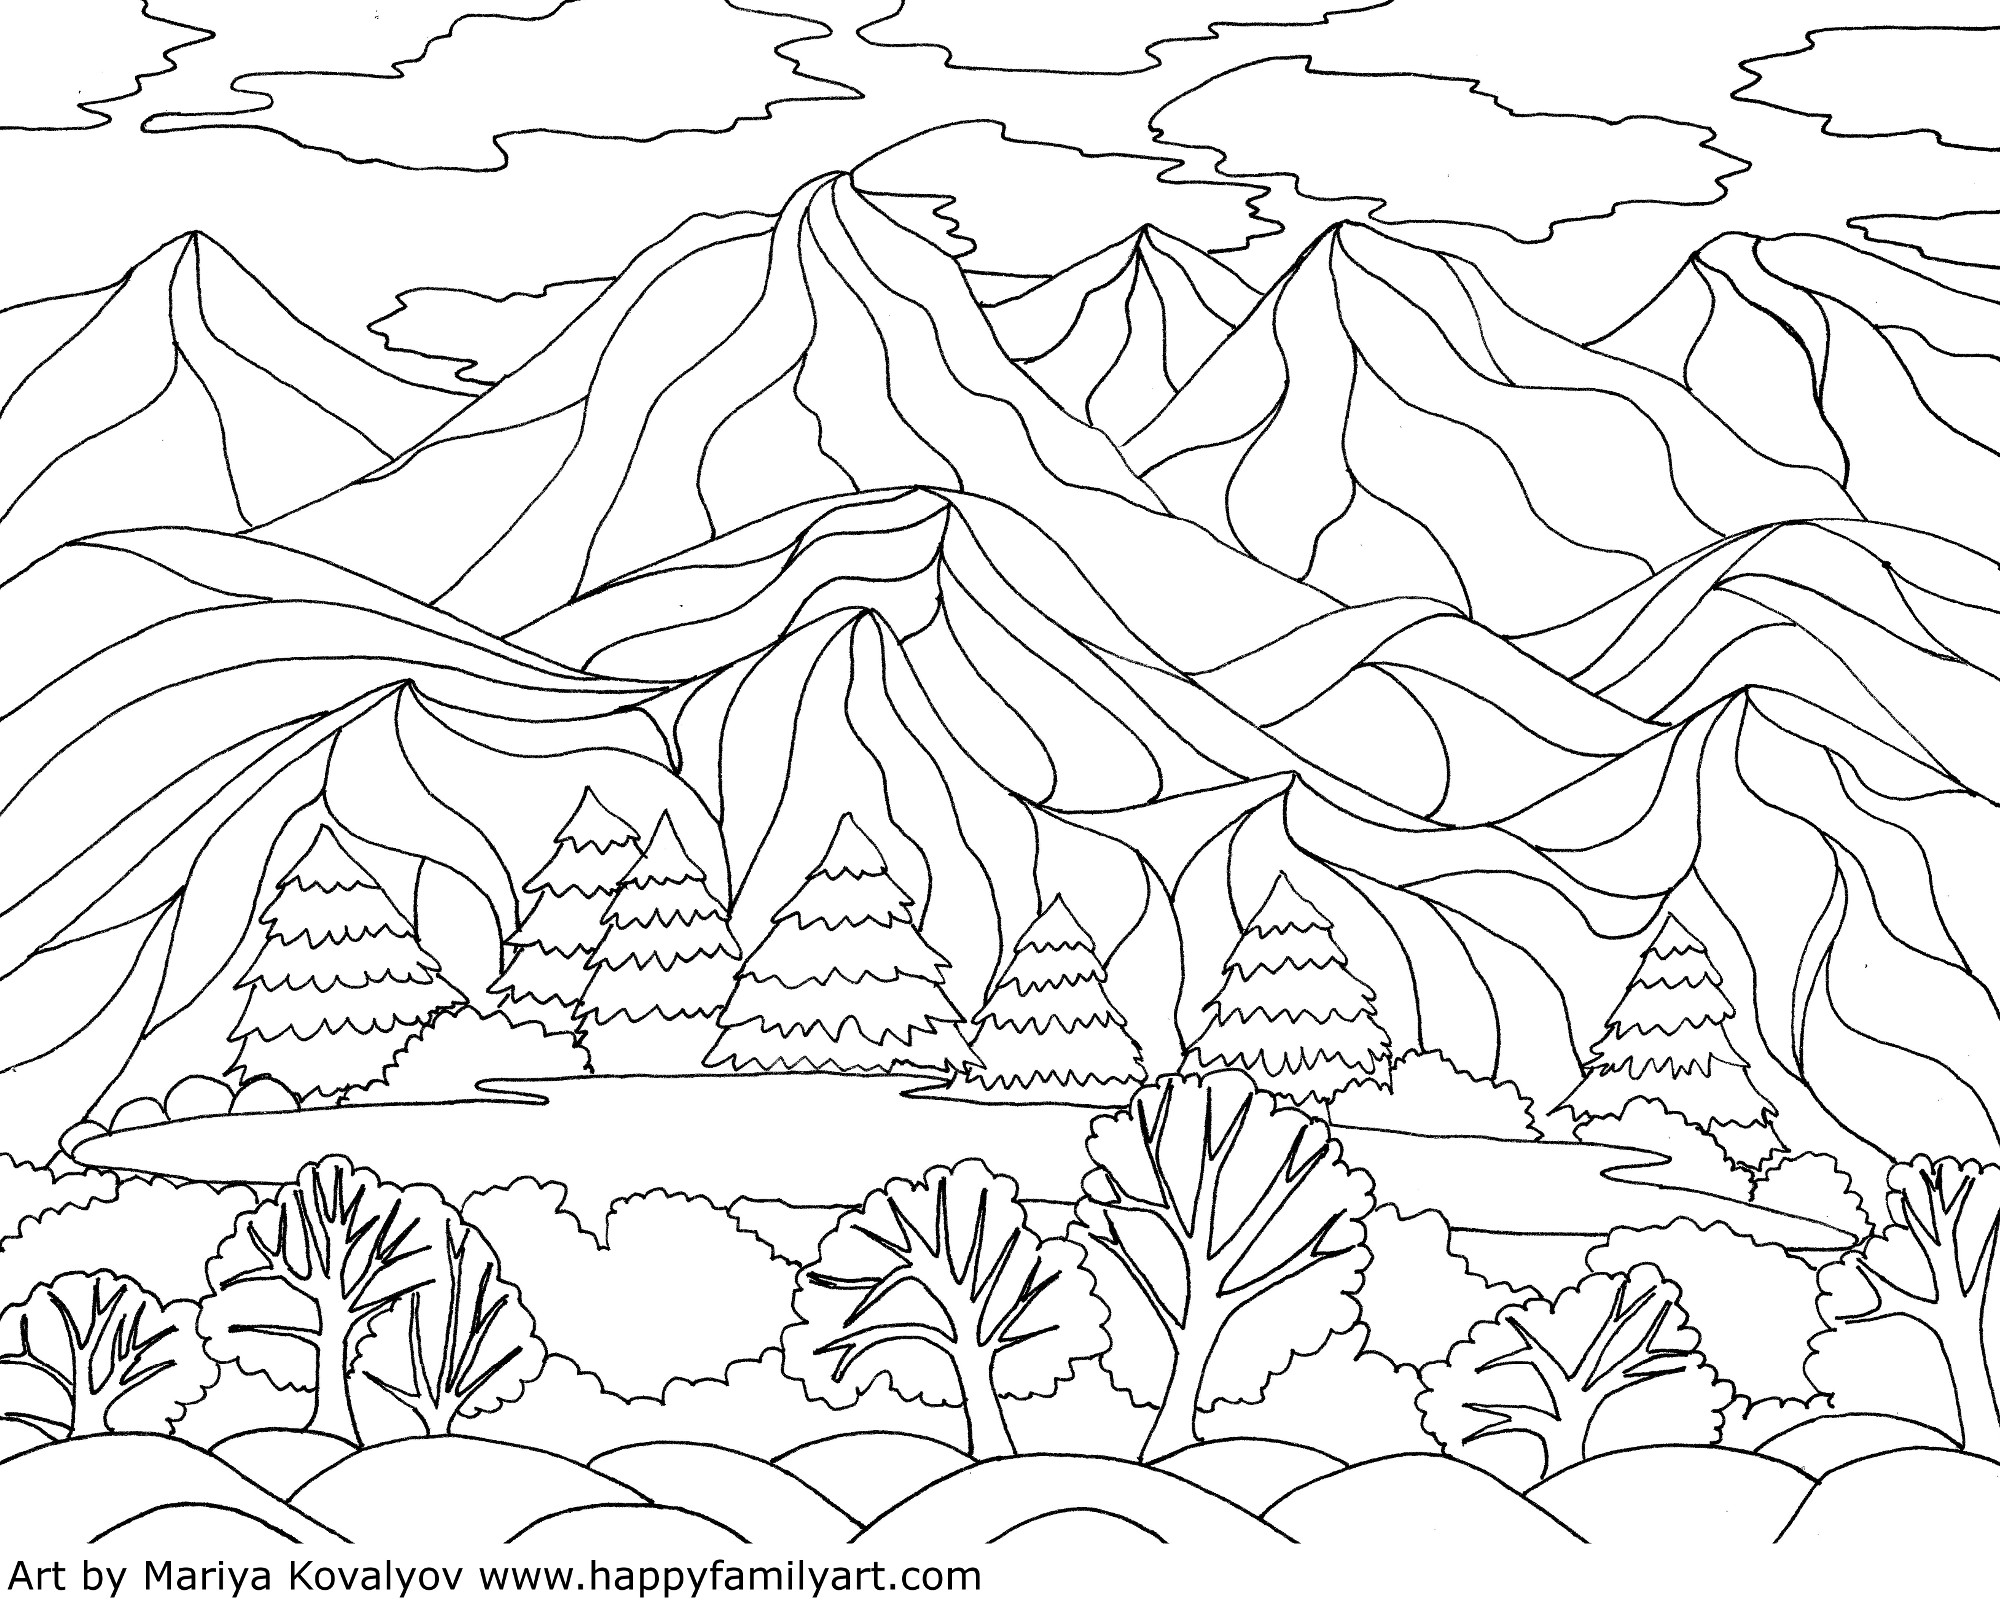 Landscape Drawing at GetDrawings.com | Free for personal use ...